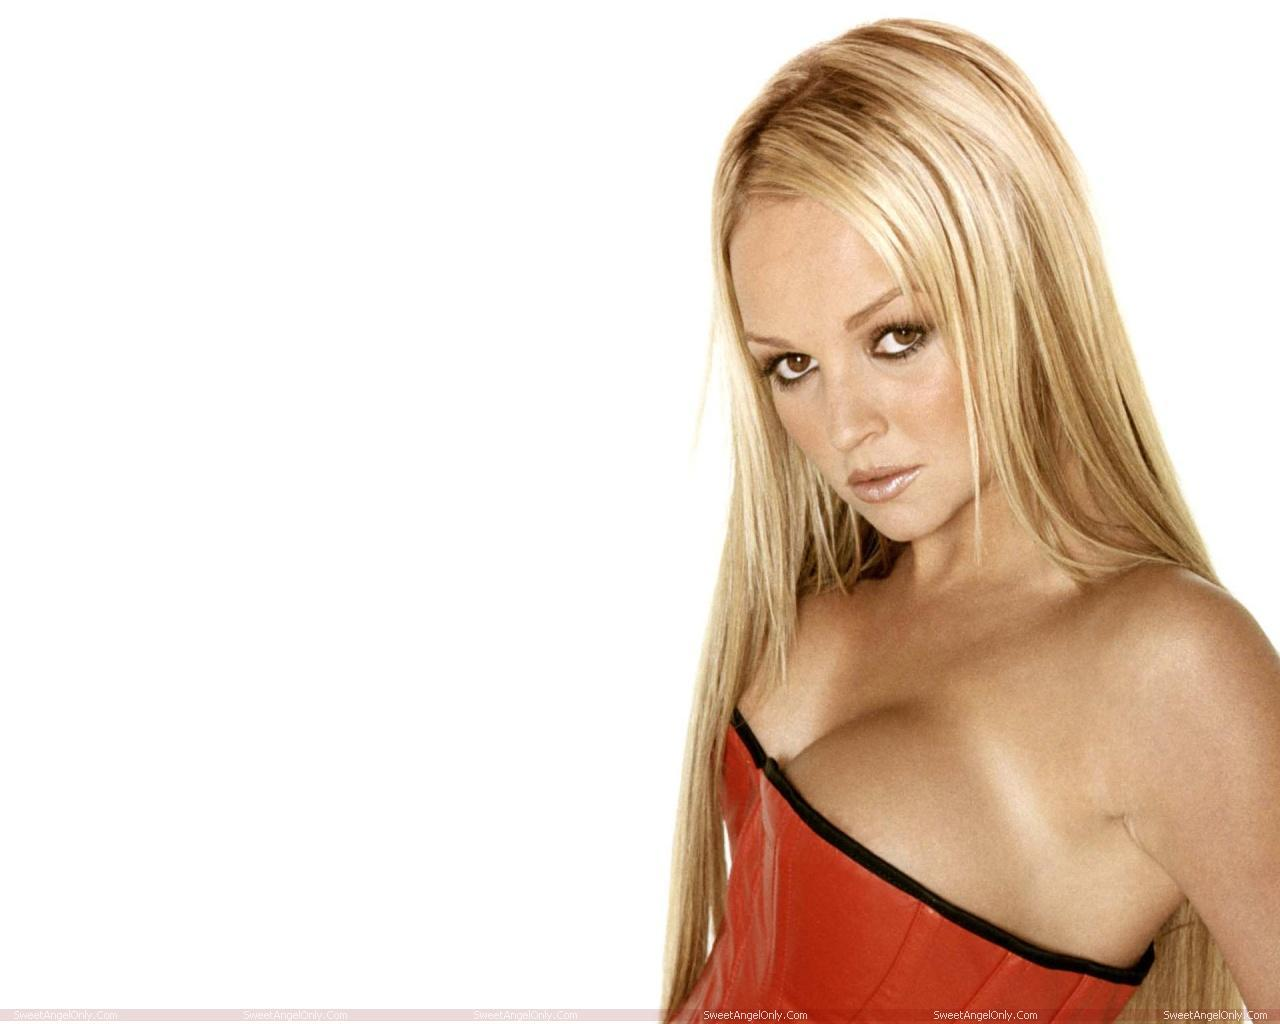 http://2.bp.blogspot.com/-U4yUOEVvcws/TWjZ-_U0hGI/AAAAAAAAEx8/PufqWmfrrlE/s1600/actress_jennifer_ellison_hot_wallpaper_01.jpg